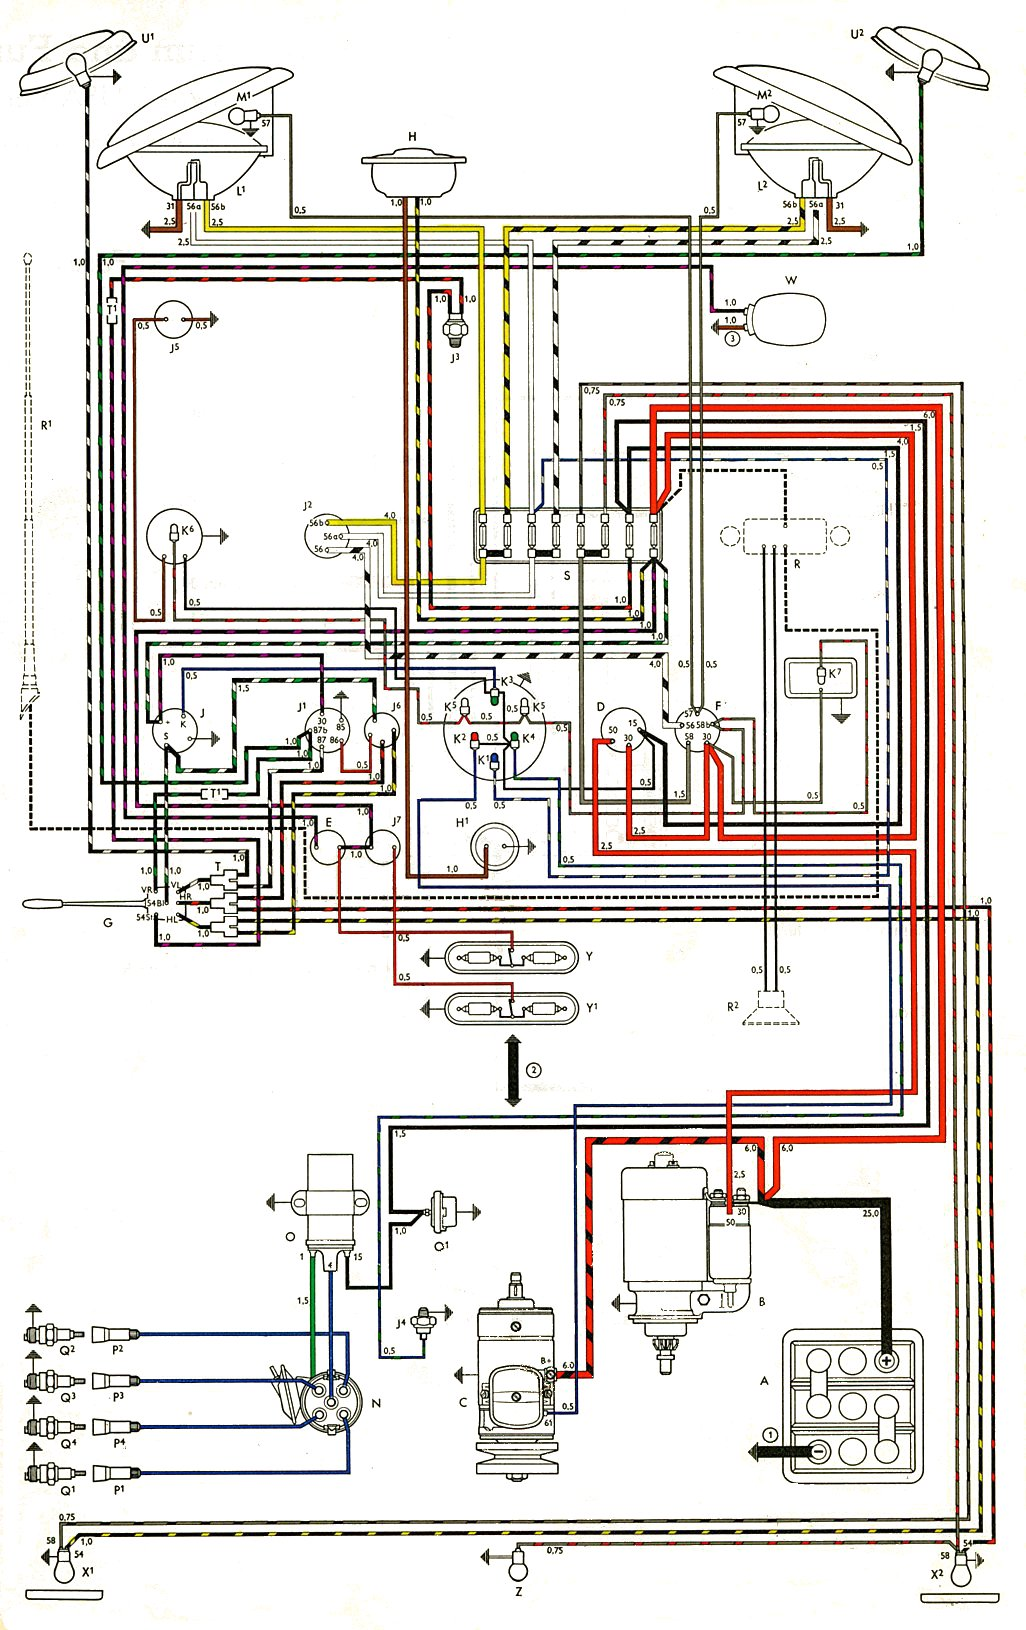 wiring diagram 69 mustang wiring diagram 69 volkswagen bug thesamba com type 2 wiring diagrams